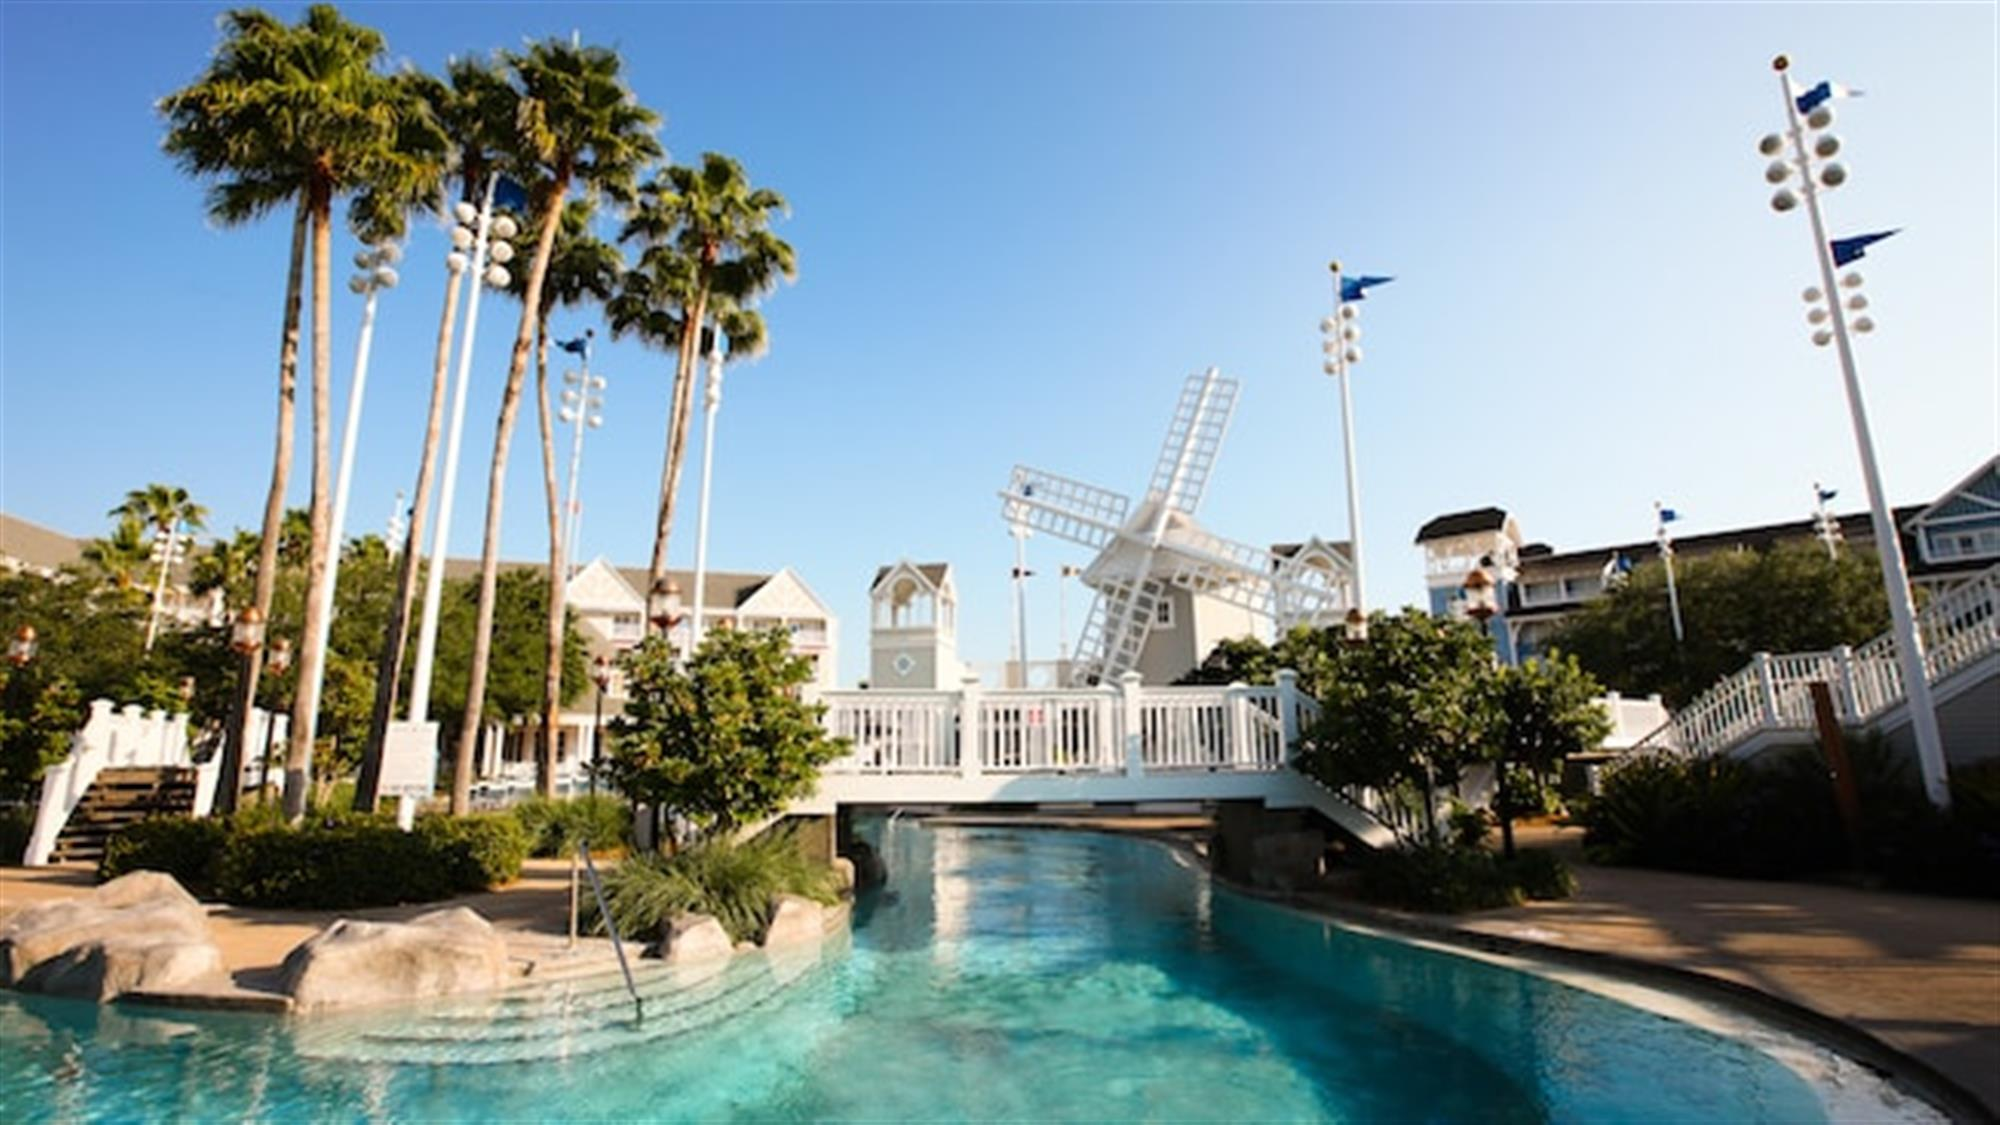 Stormalong Bay pool area featuring a windmill and an island accessible by 2 white bridges